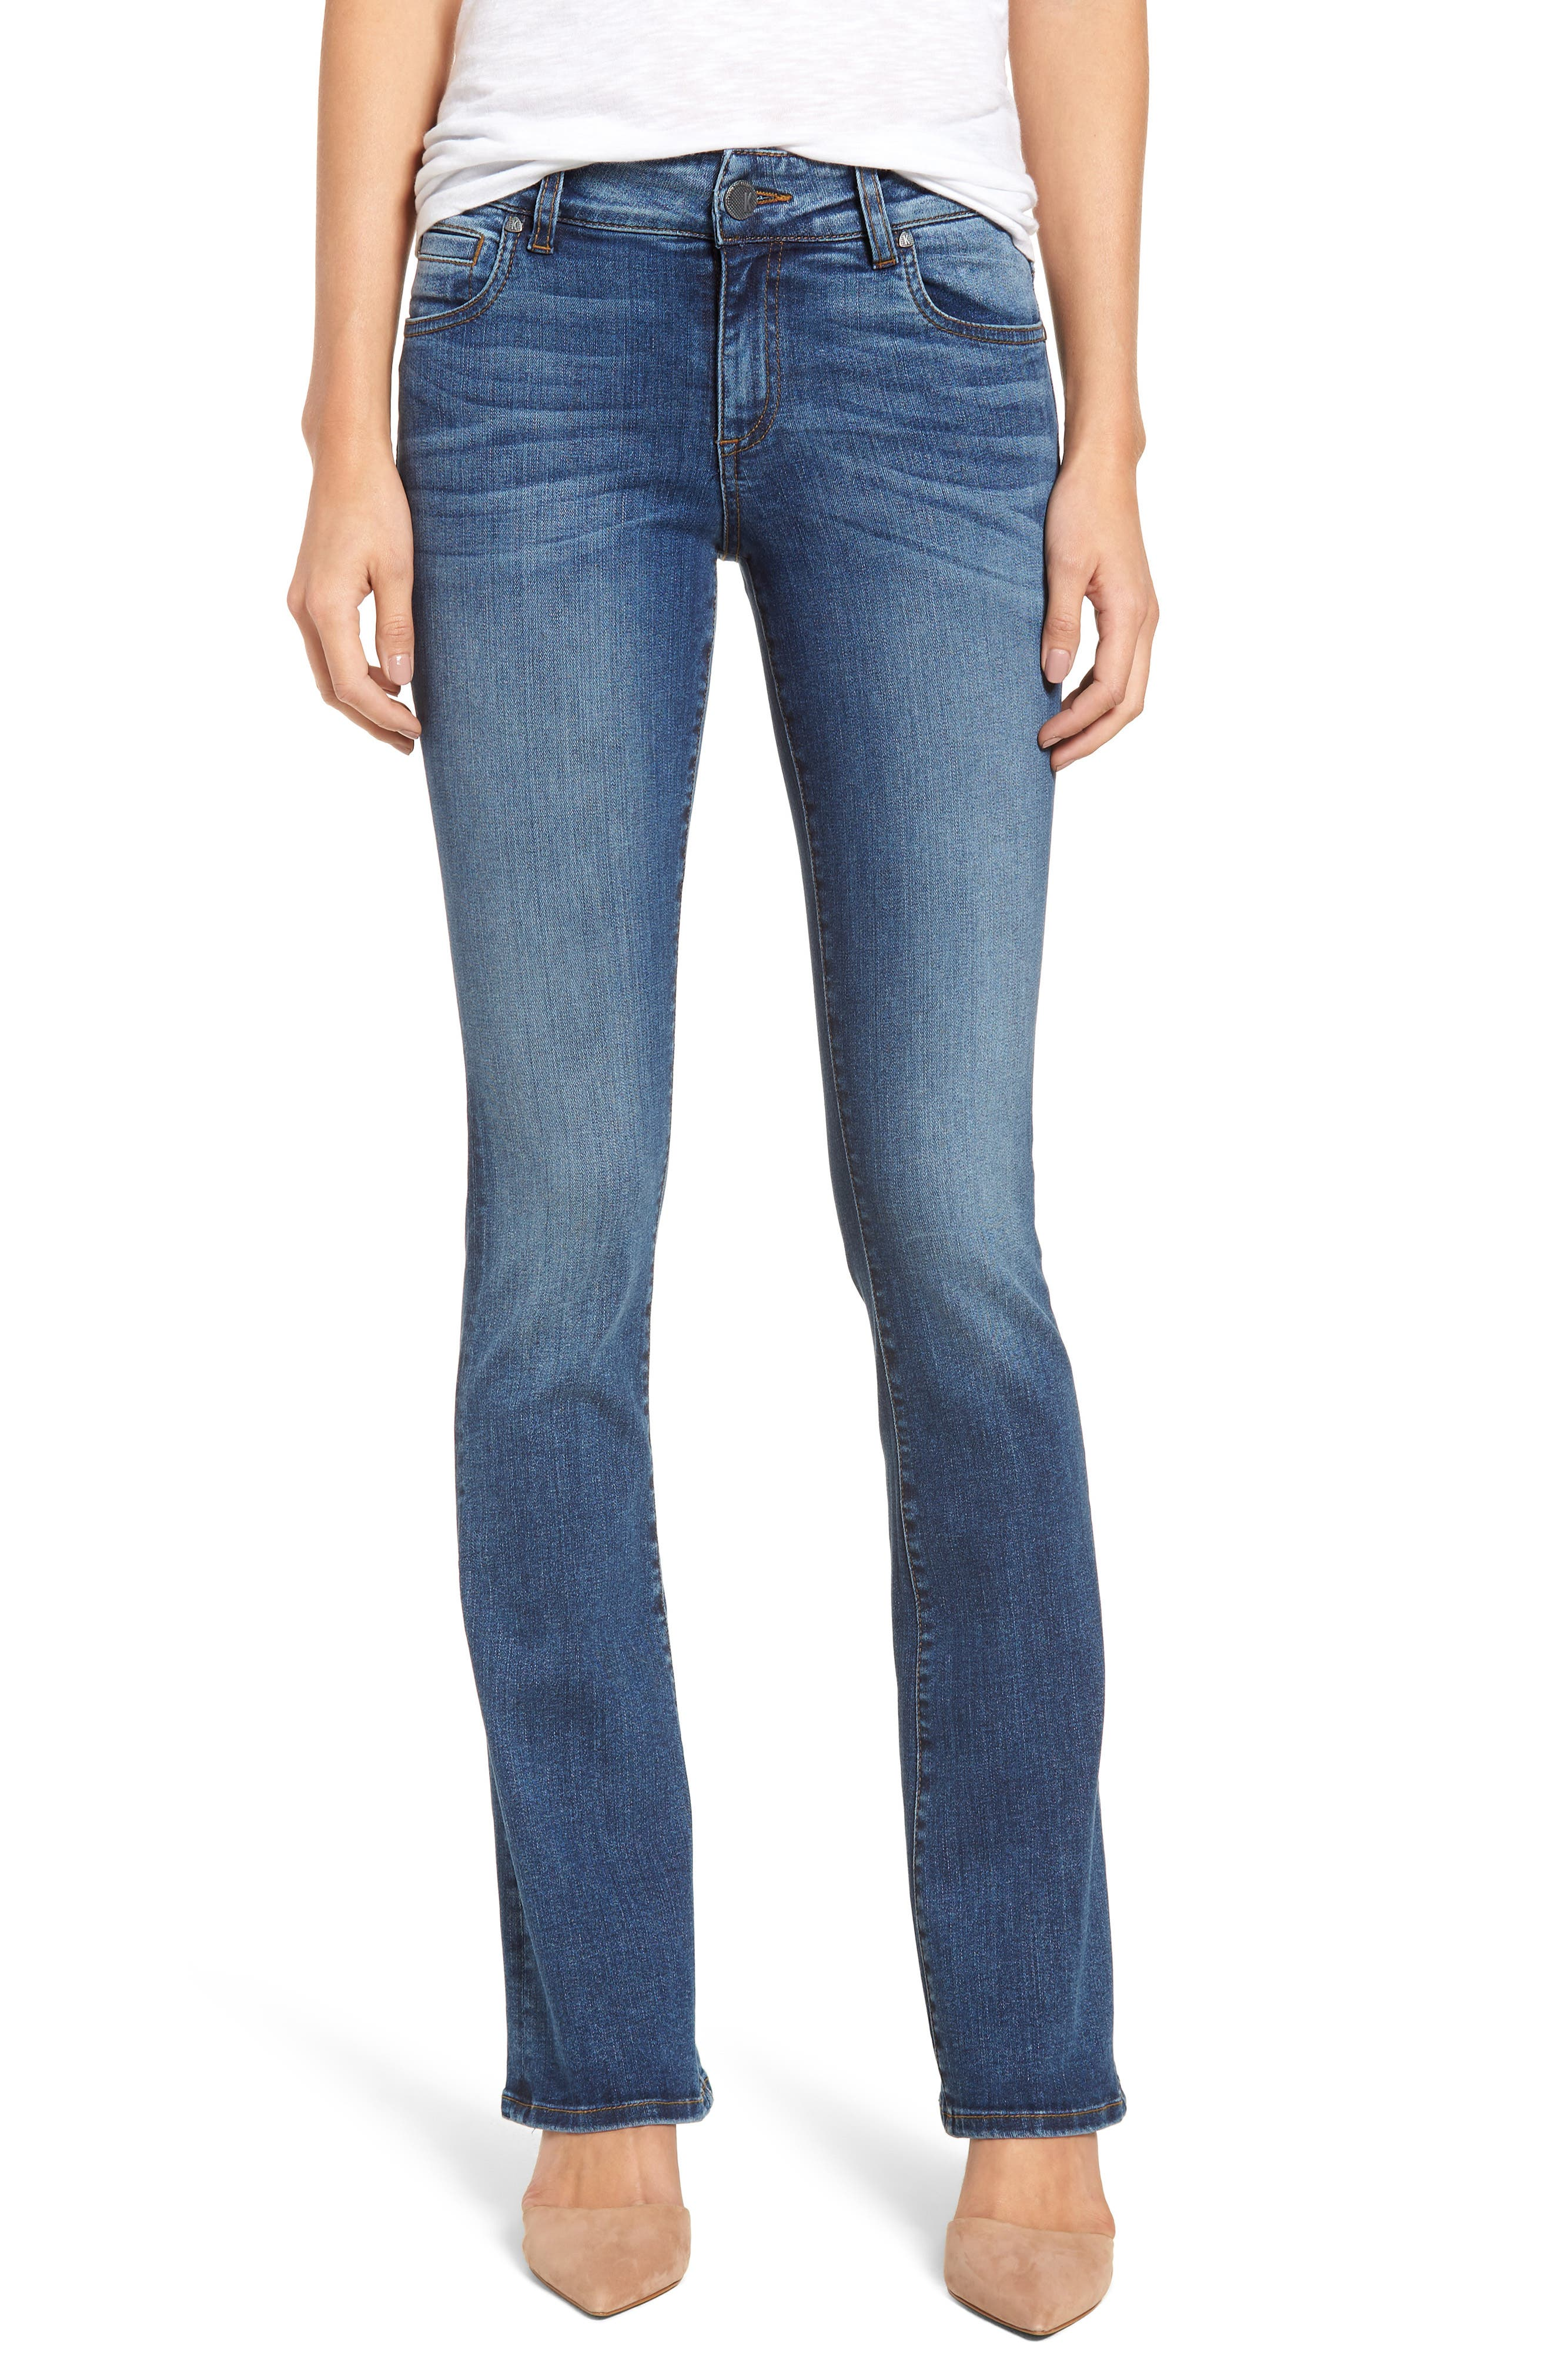 Natalie Bootcut Jeans KUT FROM THE KLOTH $59.96 (Nordstrom)